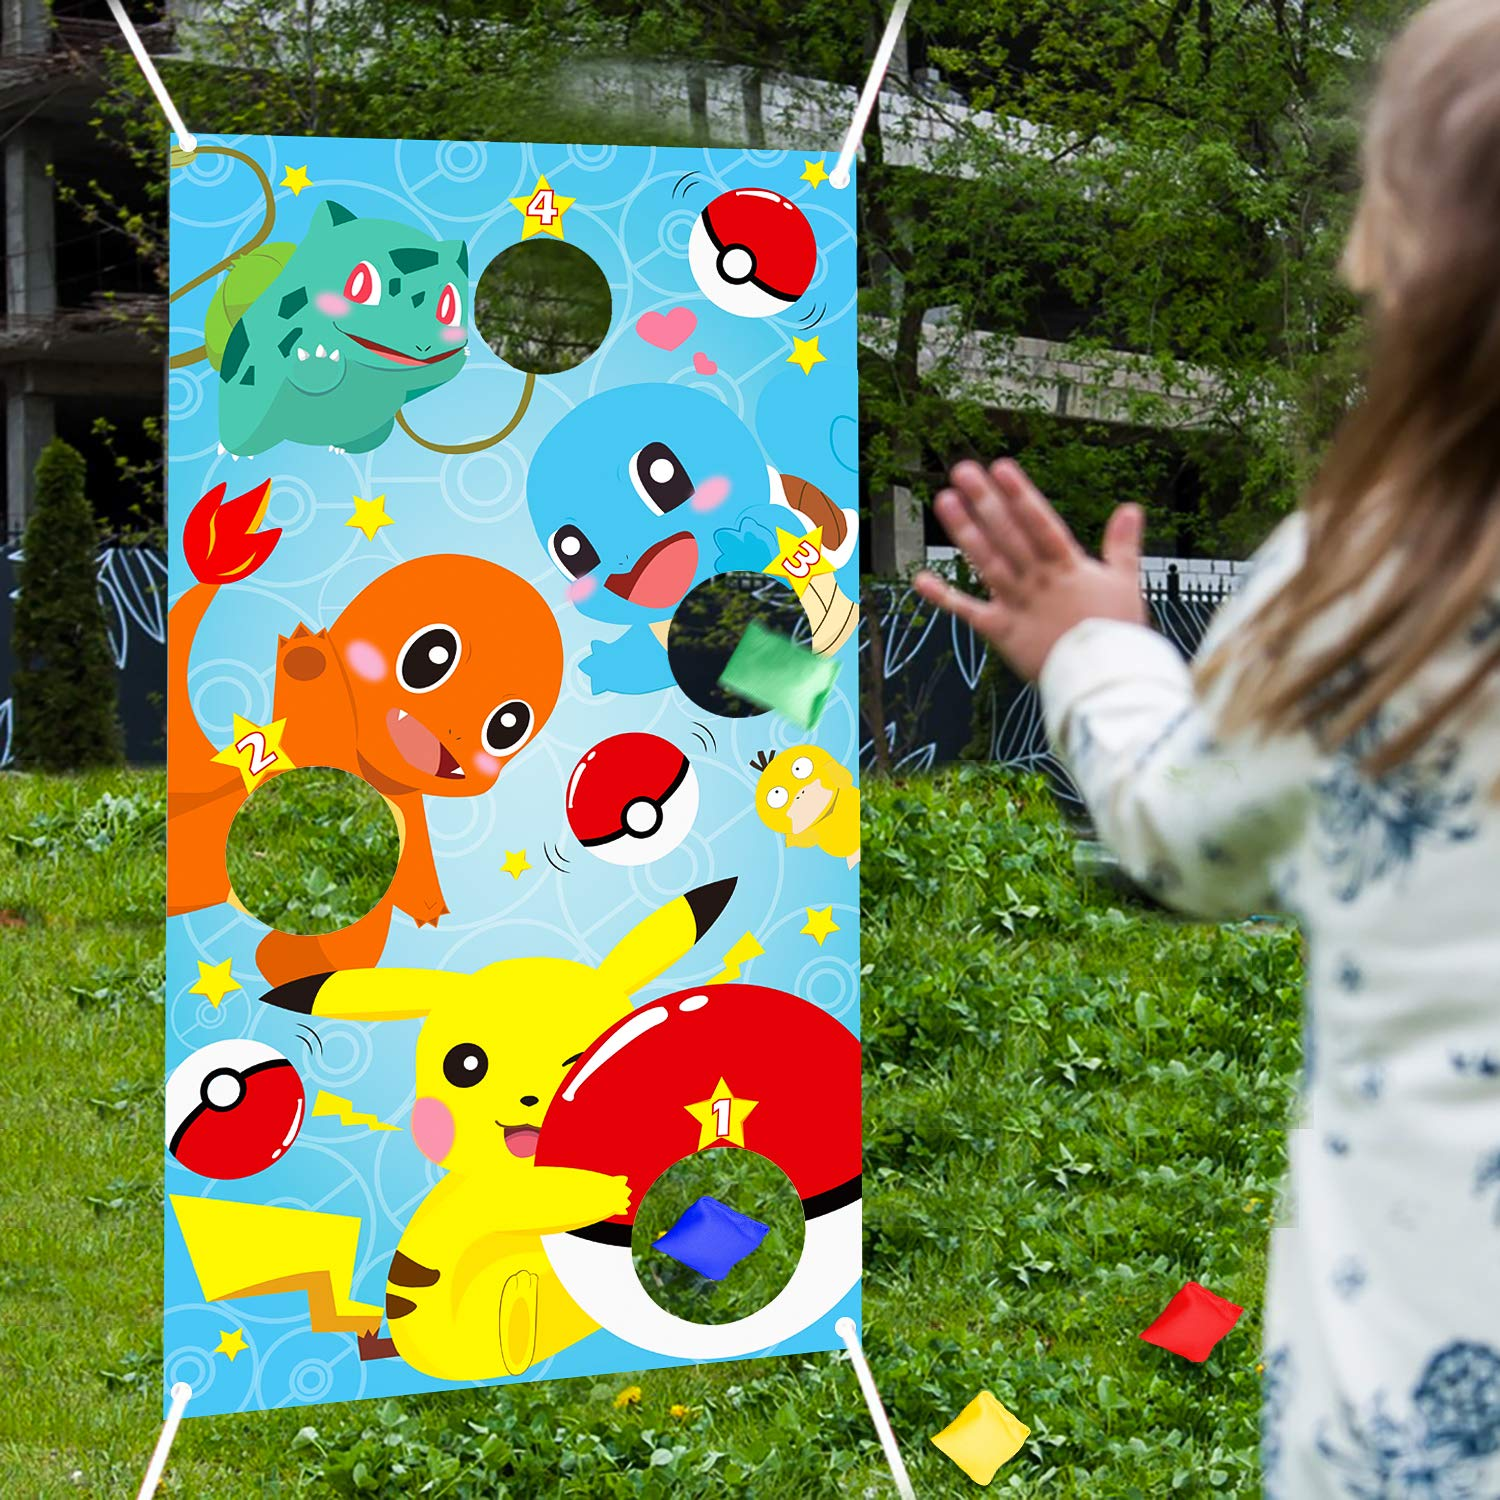 PANTIDE Cartoon Toss Games with 4 Bean Bags, Cartoon Indoor Outdoor Throwing Game Party Supplies for Kids and Adults, Carnival Games Toss Games Banner for Video Game Theme Birthday Party Decoration